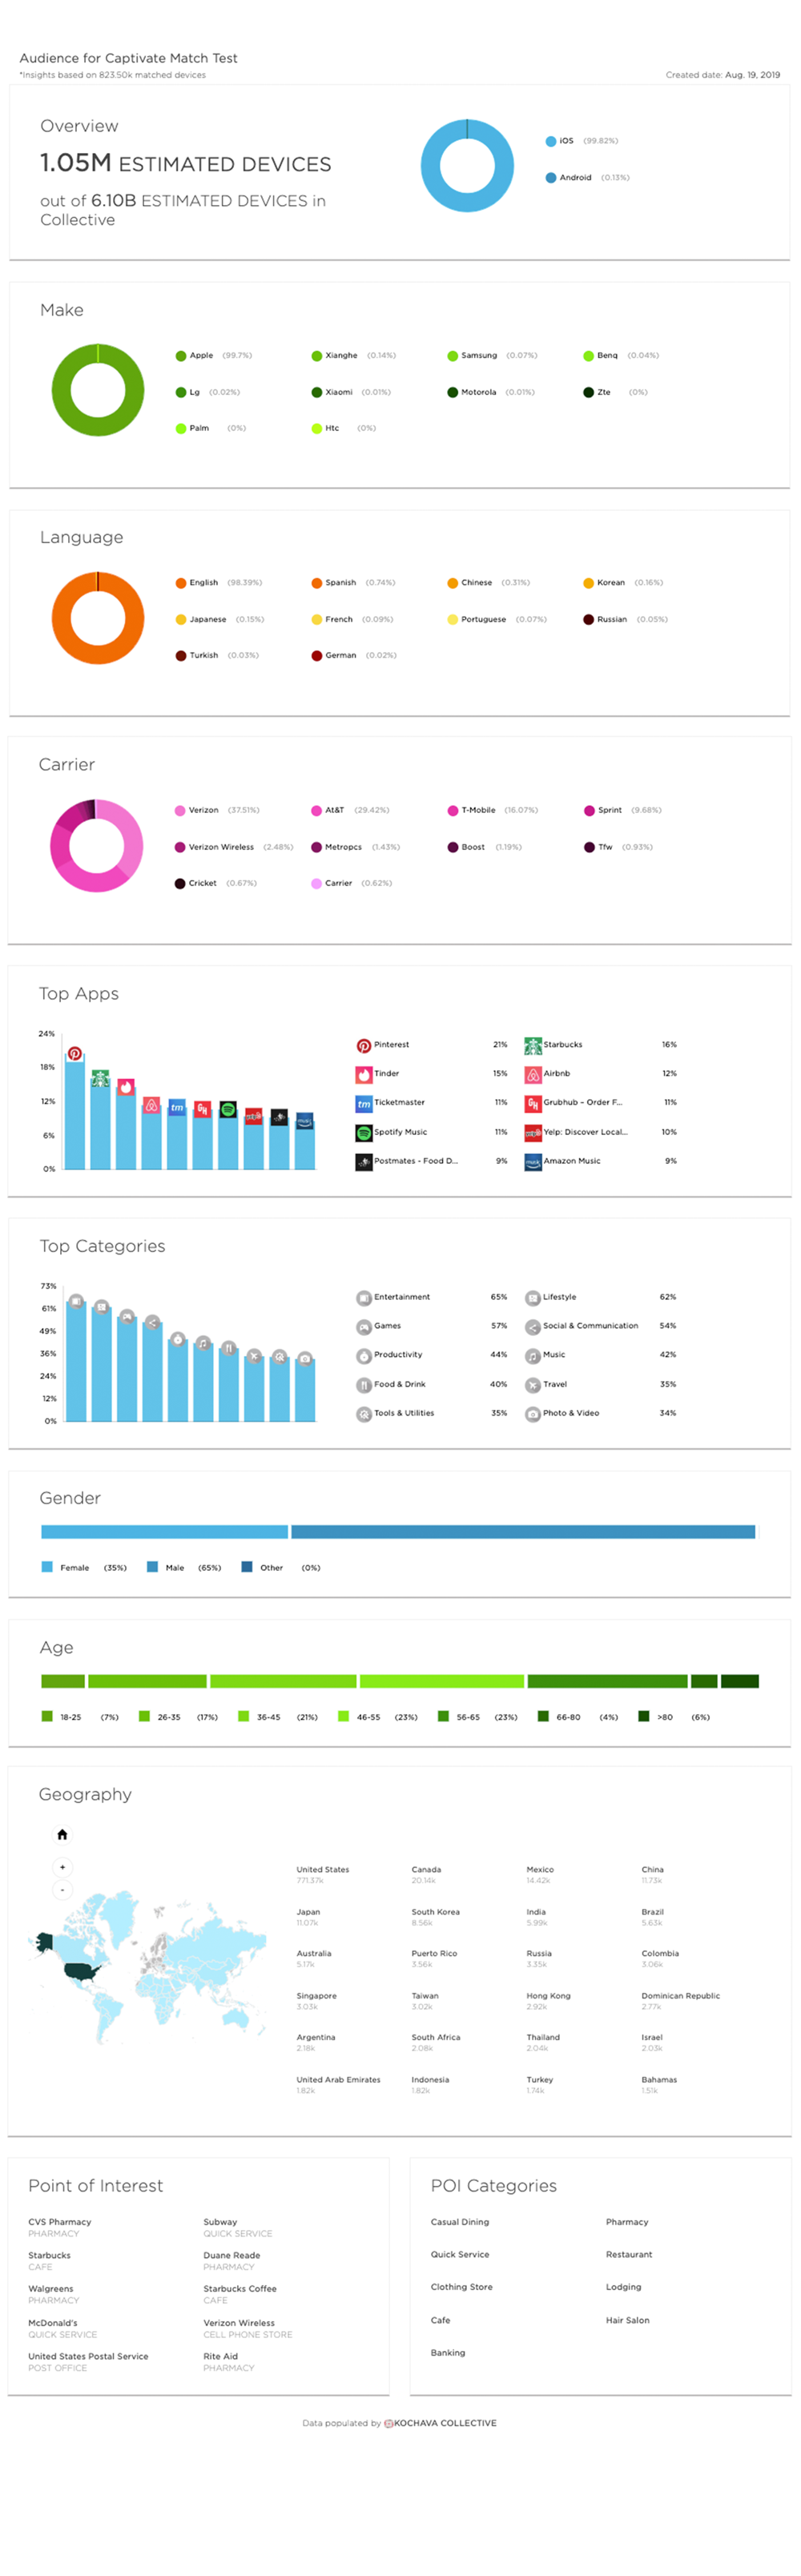 audience insights include device information,top apps on device, demographics, most visited points of interest and more